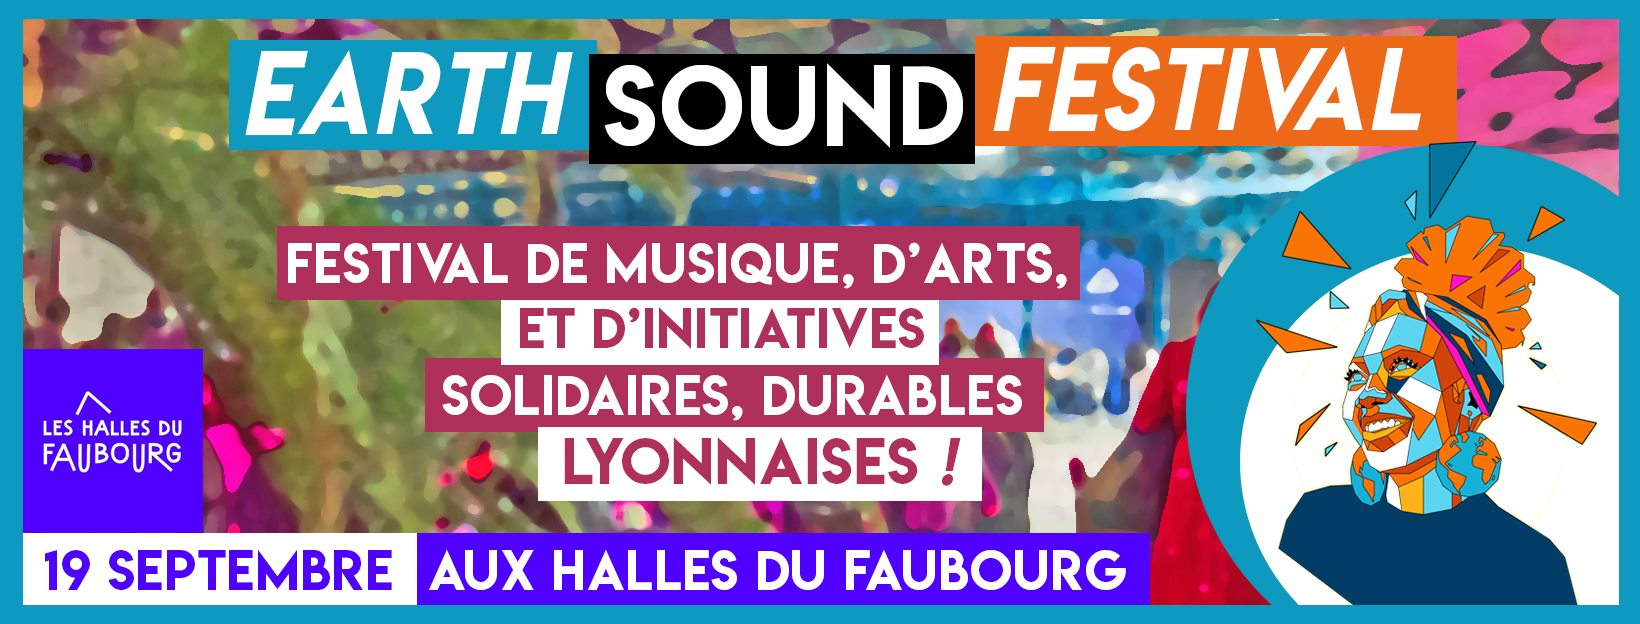 Earth Sound Festival